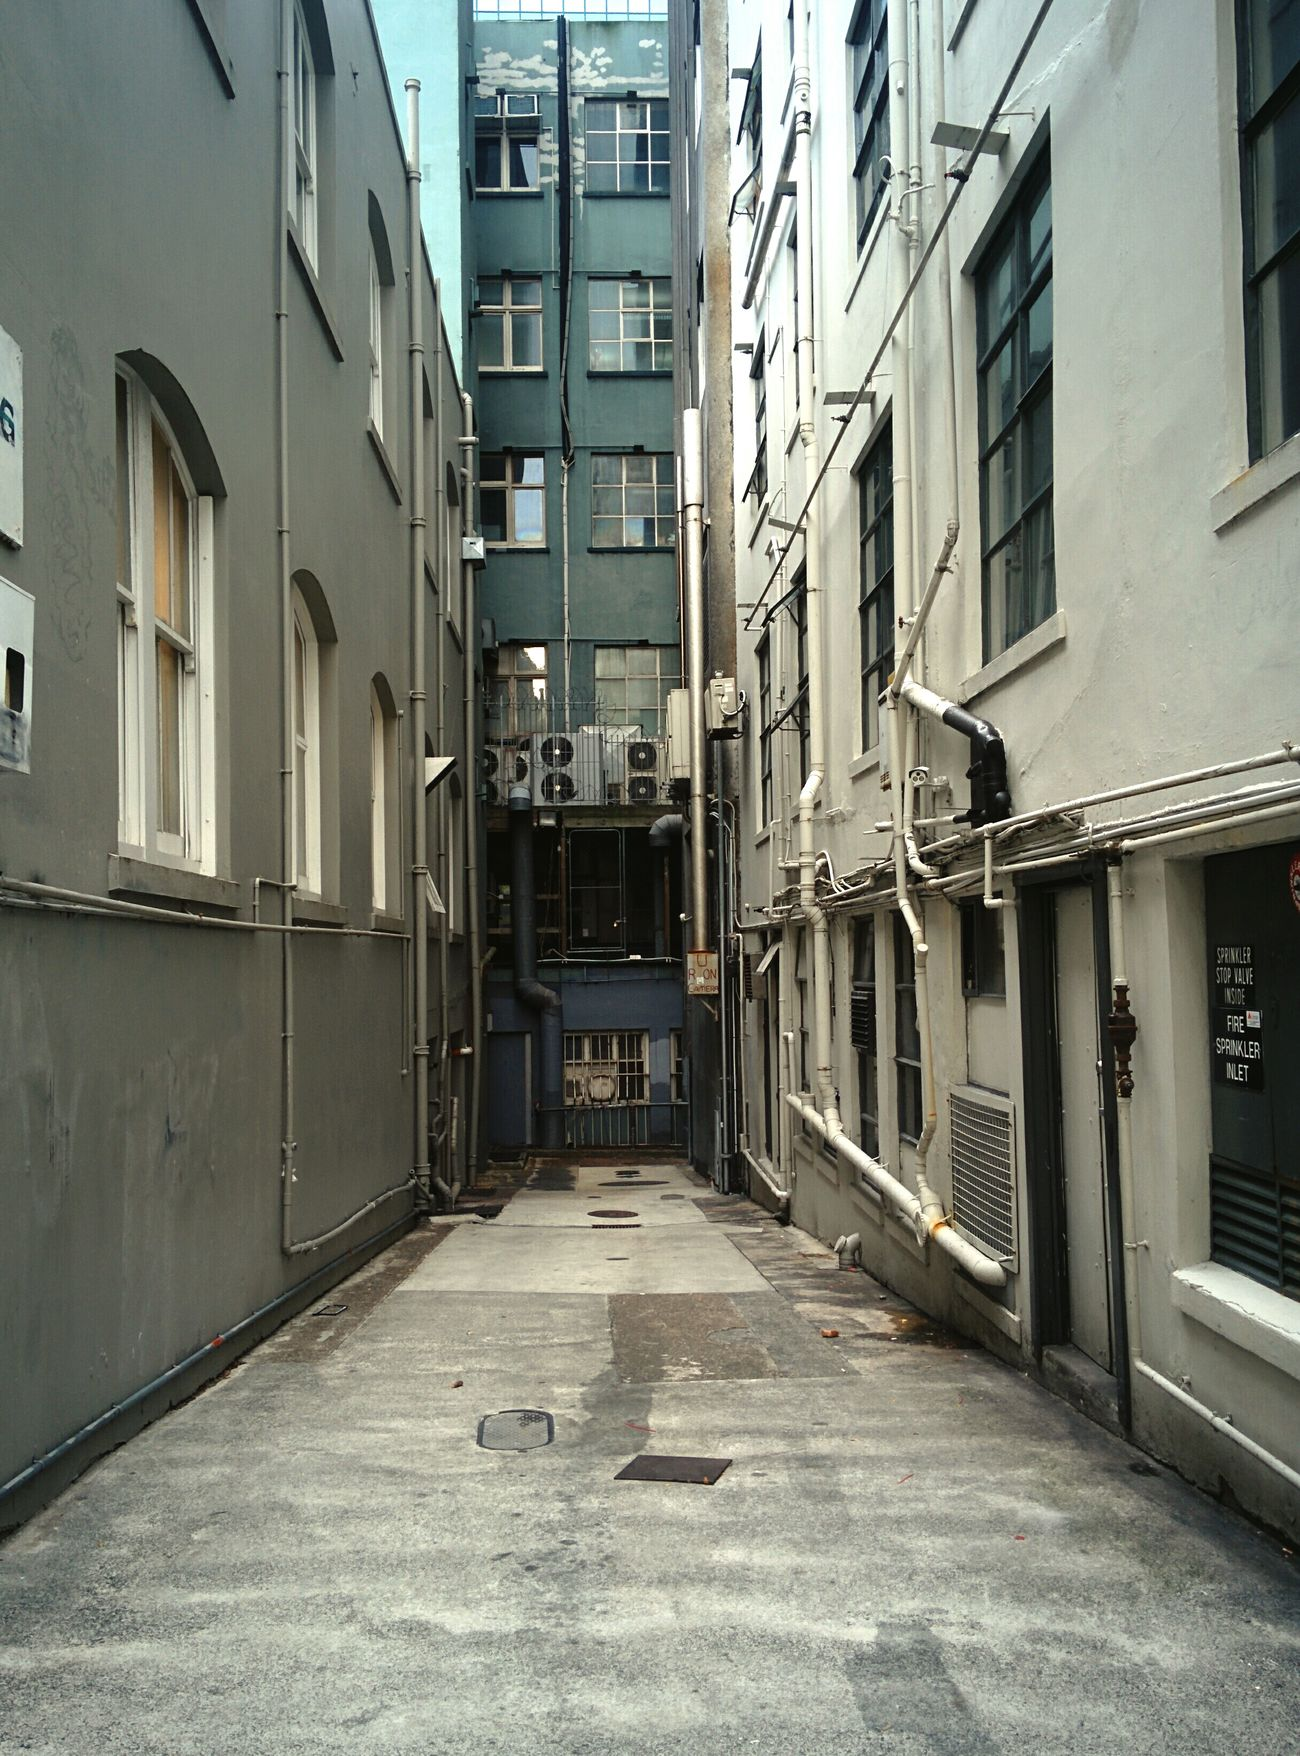 Alley No People City